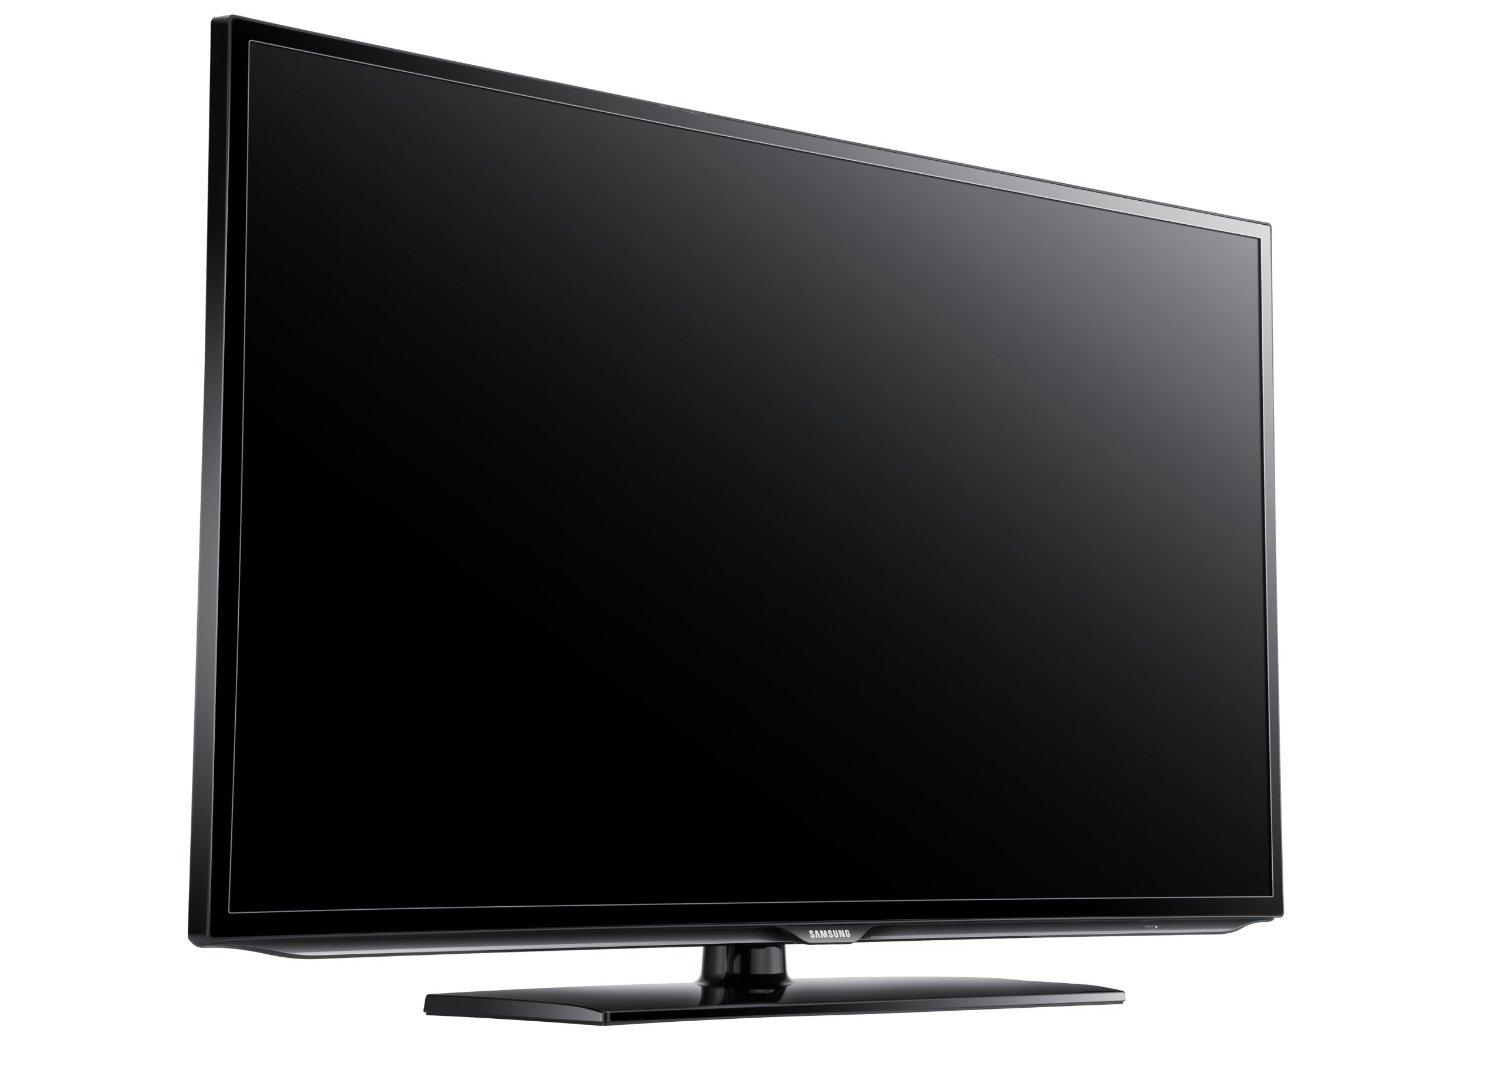 samsung hd tv 1080p manual